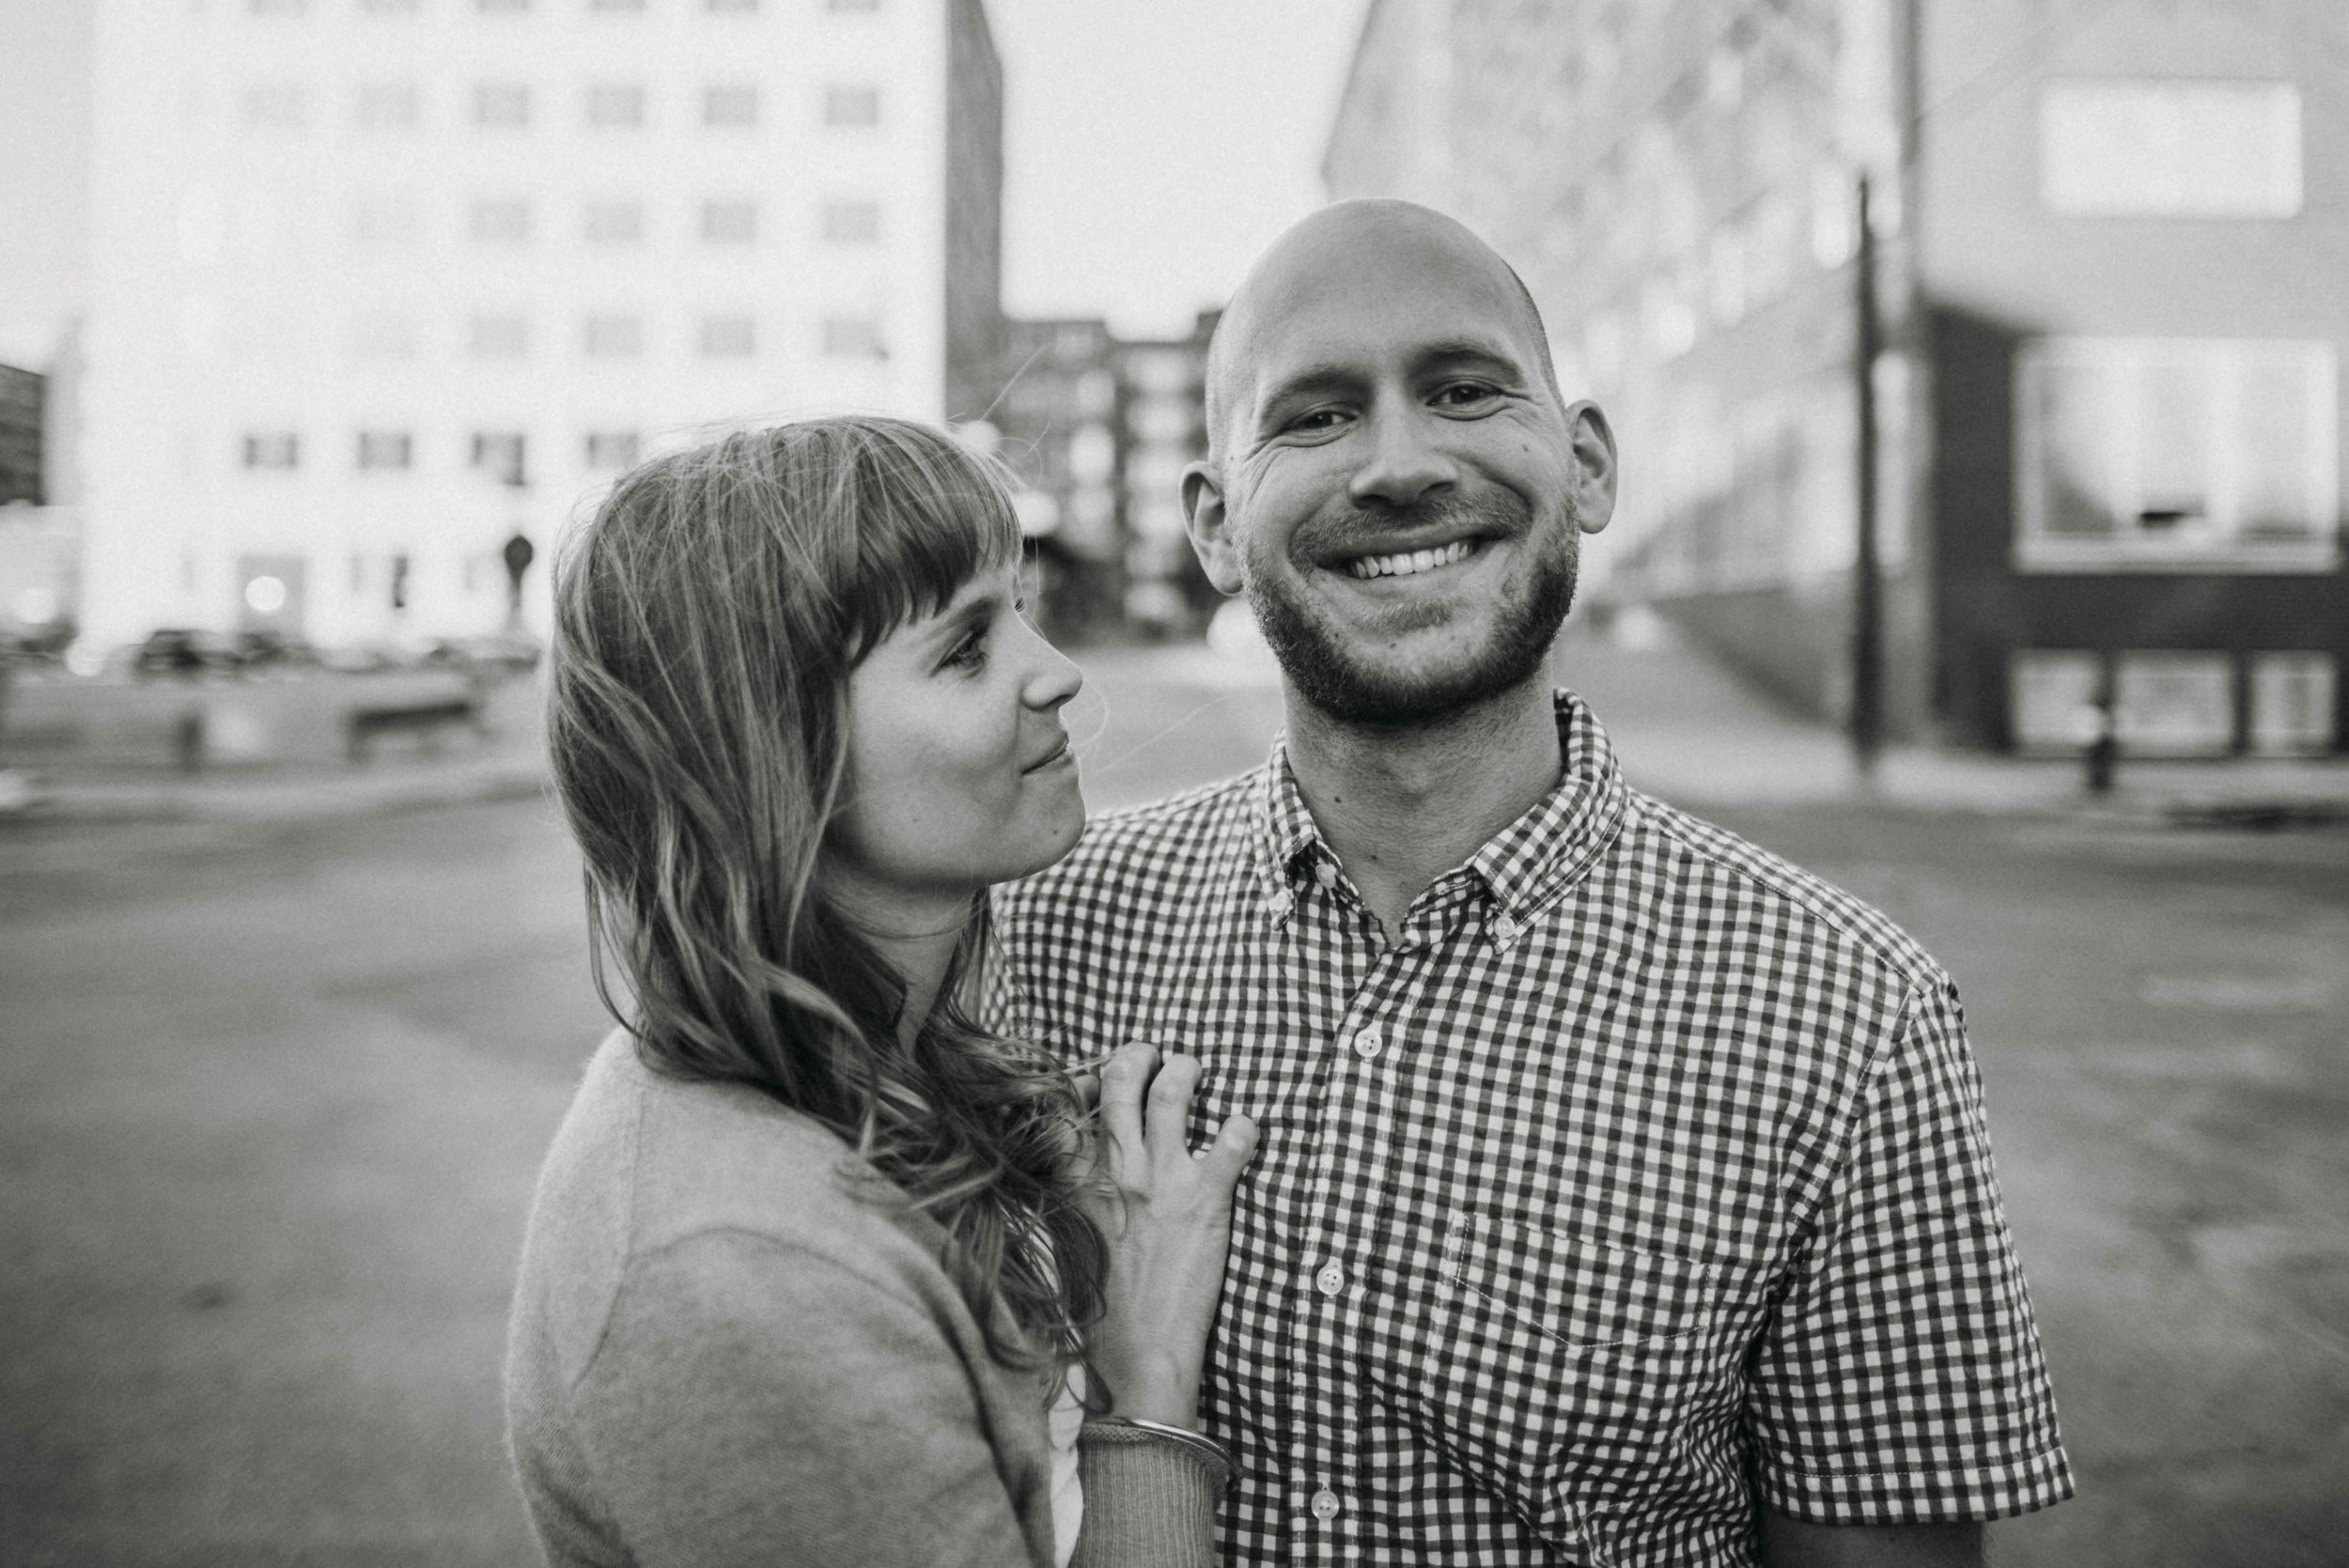 modist_brewing_minneapolis_minnesota_wedding_photography_engagement_session (9 of 32).JPG